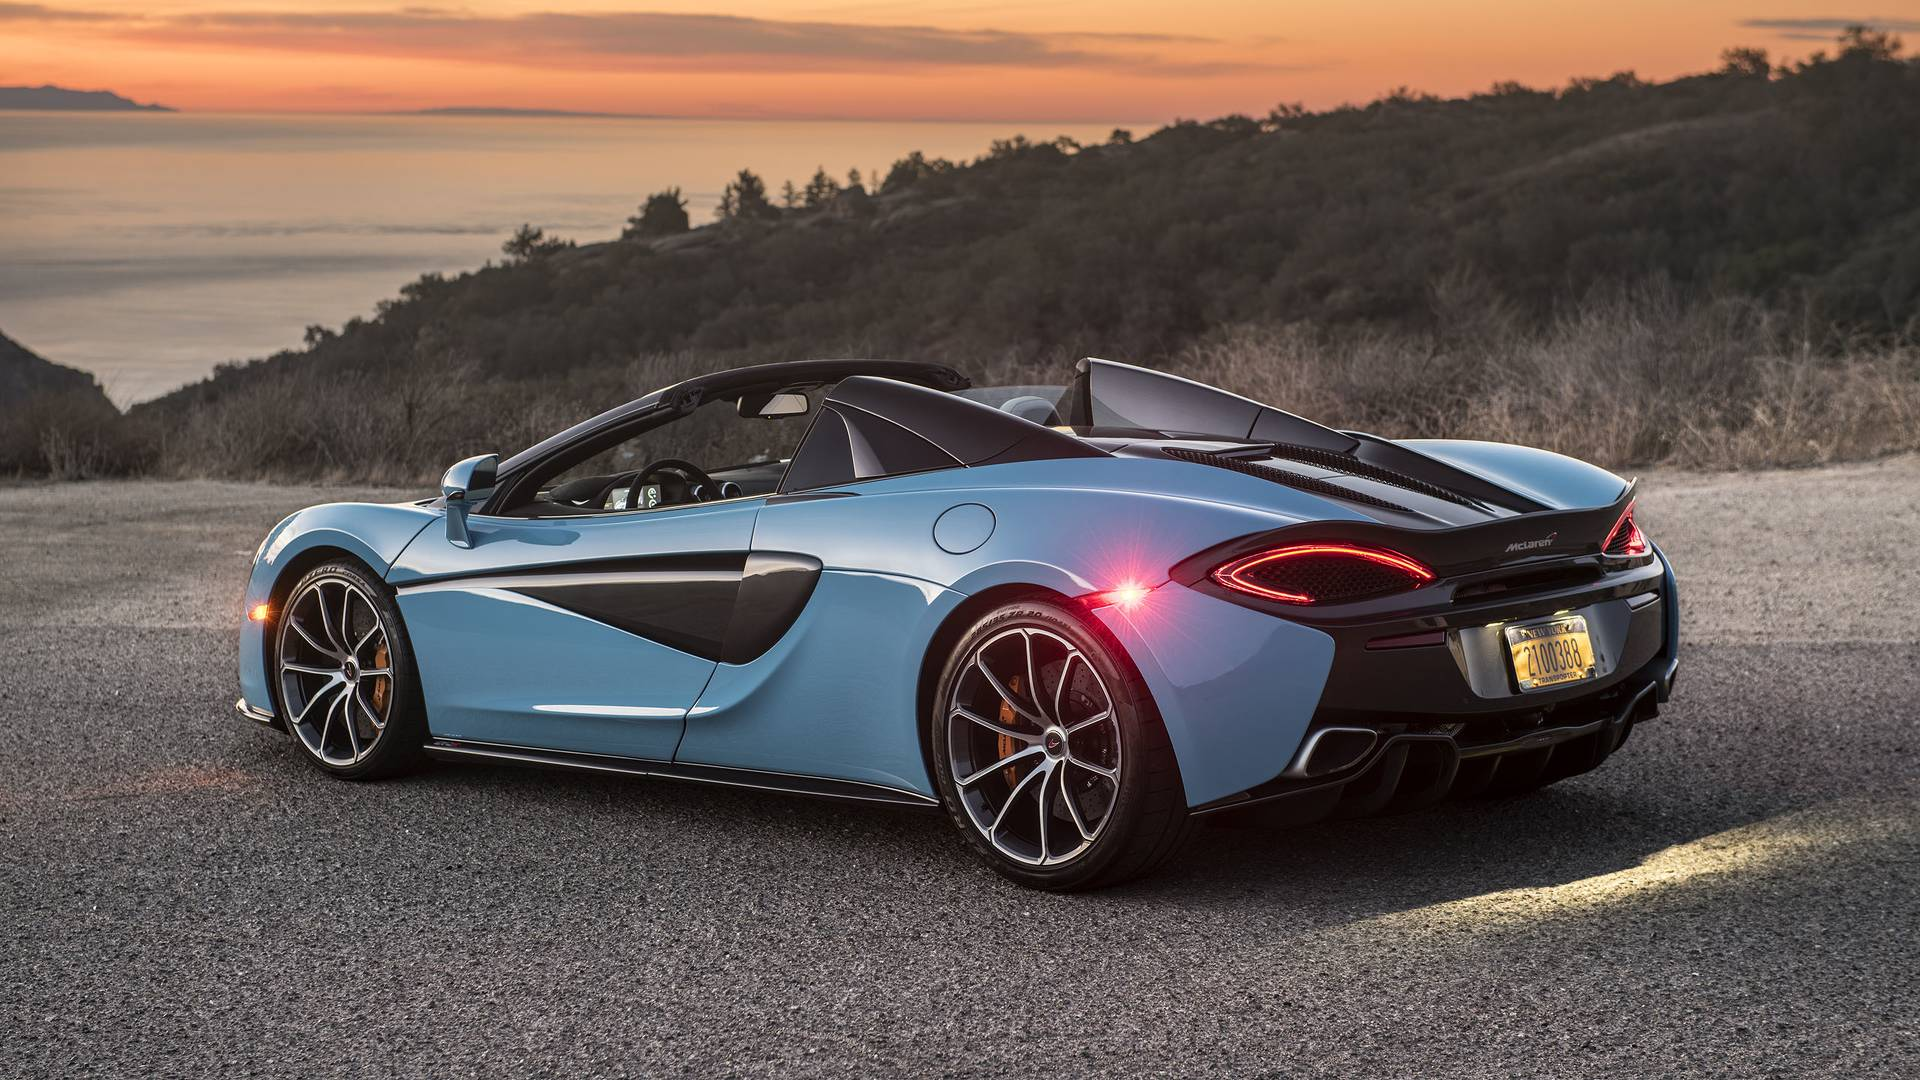 https://icdn-2.motor1.com/images/mgl/vgl0G/s1/2018-mclaren-570s-spider-review.jpg